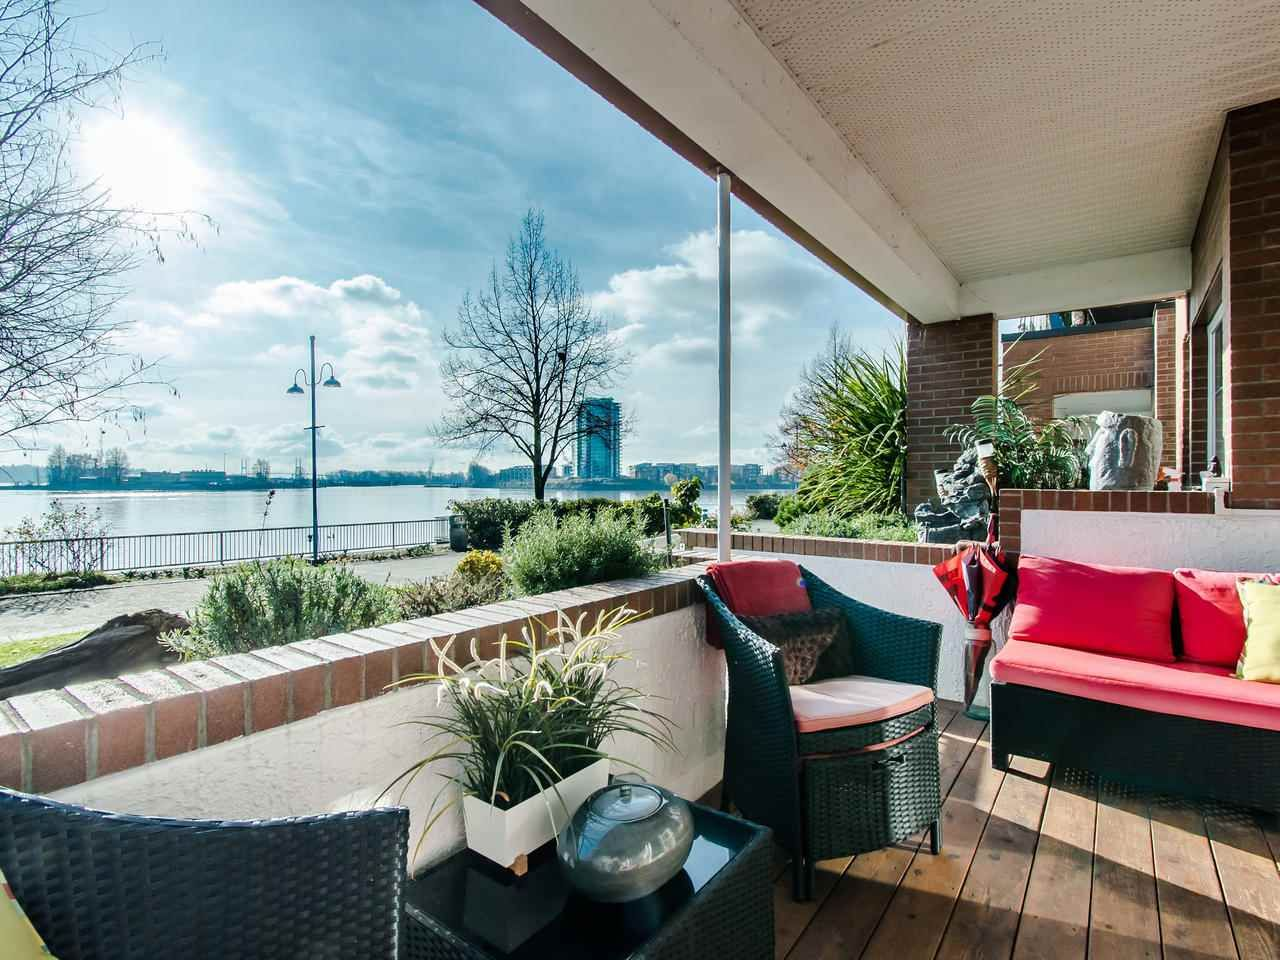 Main Photo: 103 12 K DE K Court in New Westminster: Quay Condo for sale : MLS®# R2419227